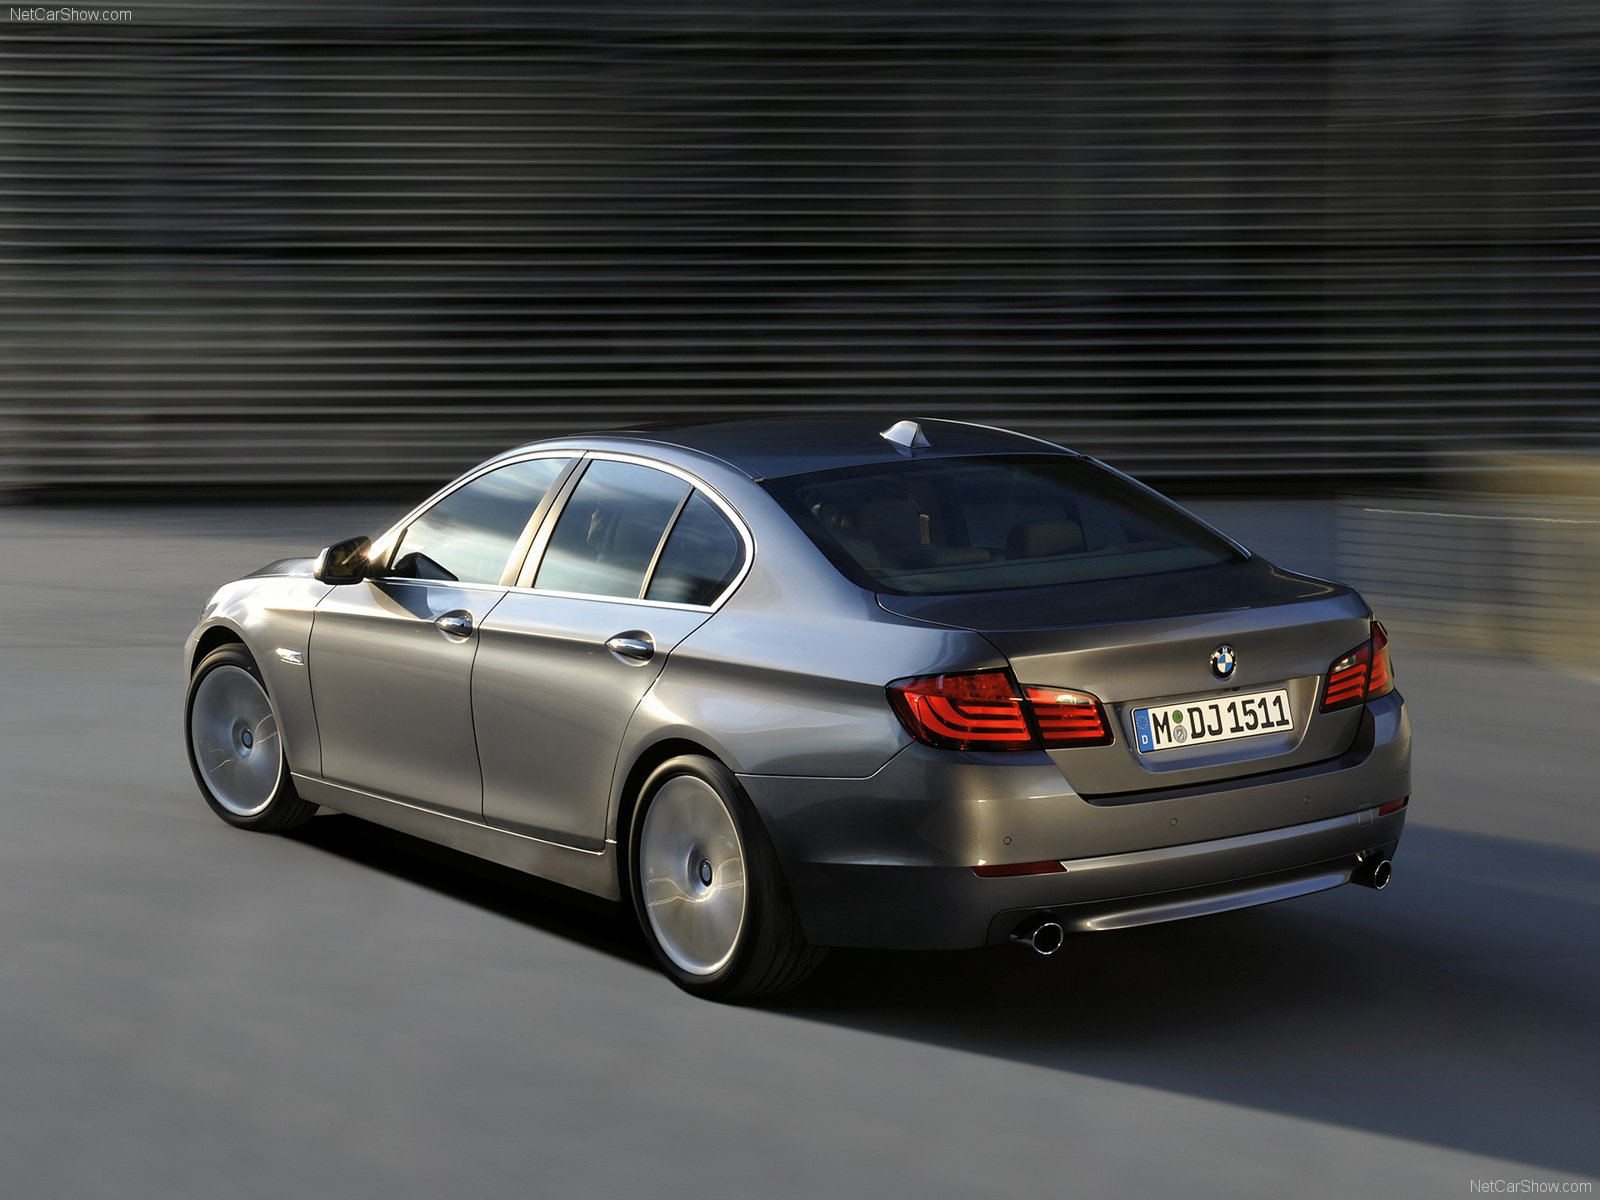 bmw 5 series f10 picture 69339 bmw photo gallery. Black Bedroom Furniture Sets. Home Design Ideas